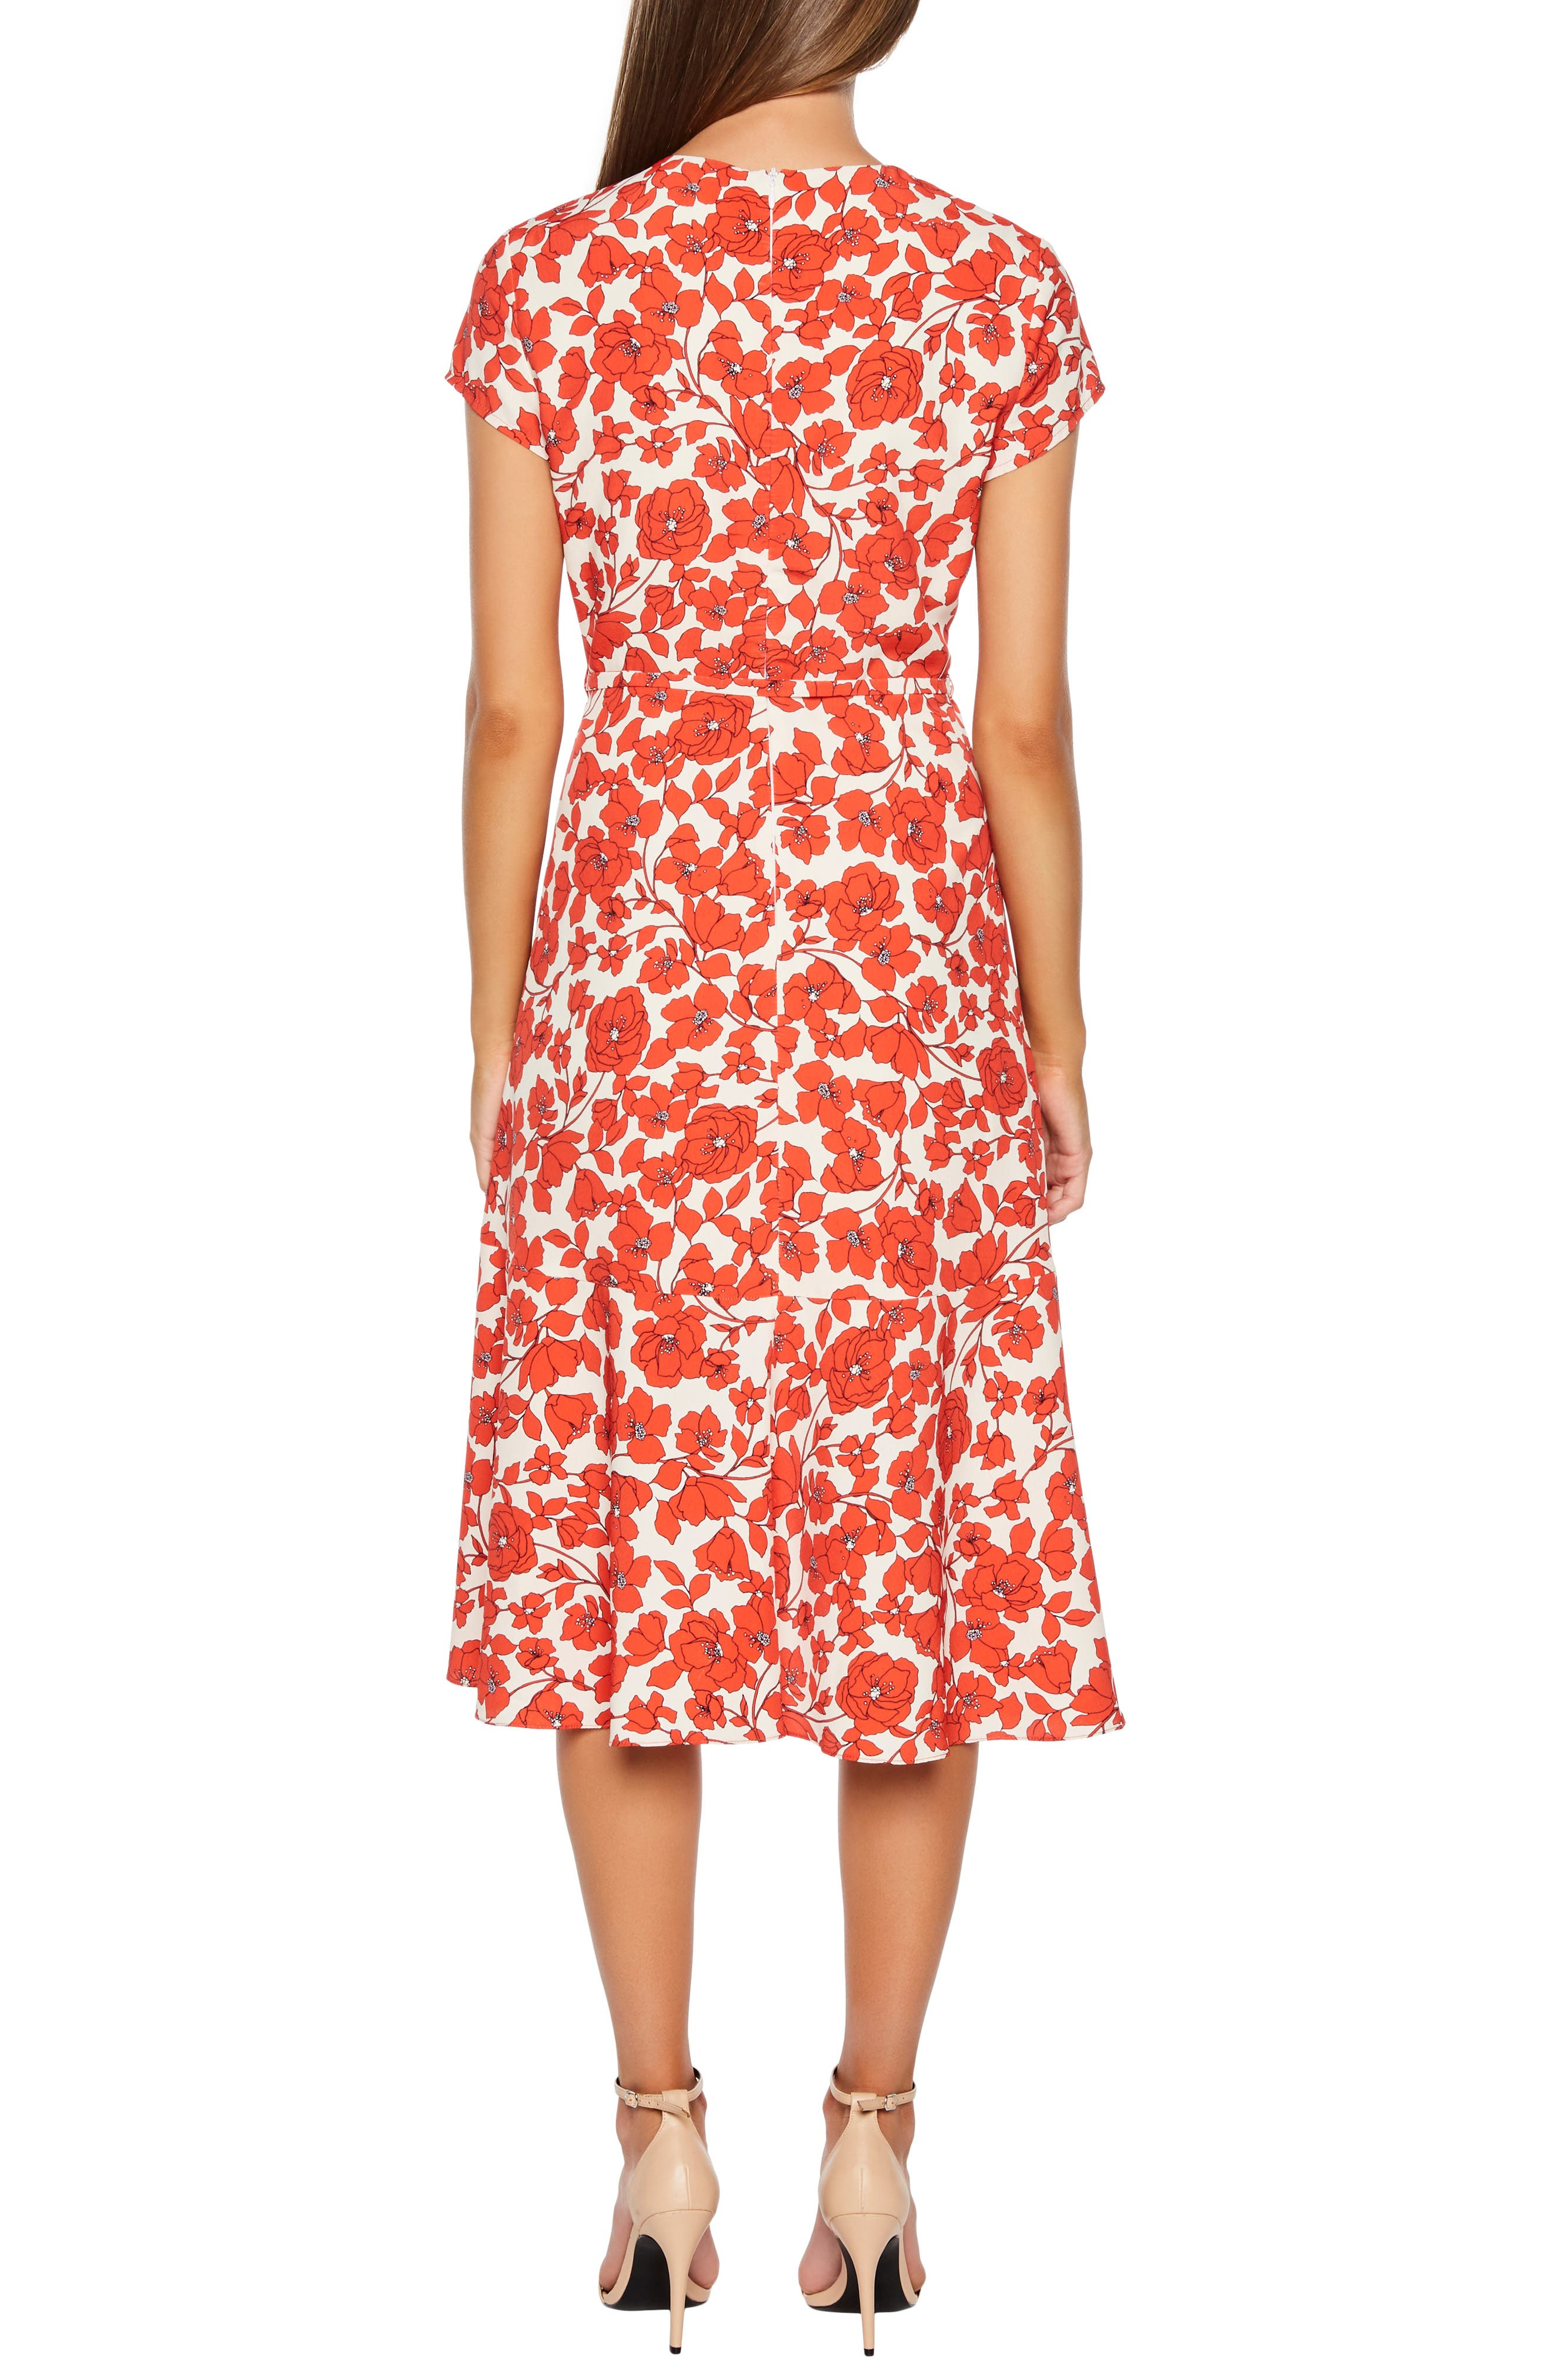 BARDOT,                             Fiesta Floral Midi Dress,                             Alternate thumbnail 2, color,                             ORANGE FLORAL